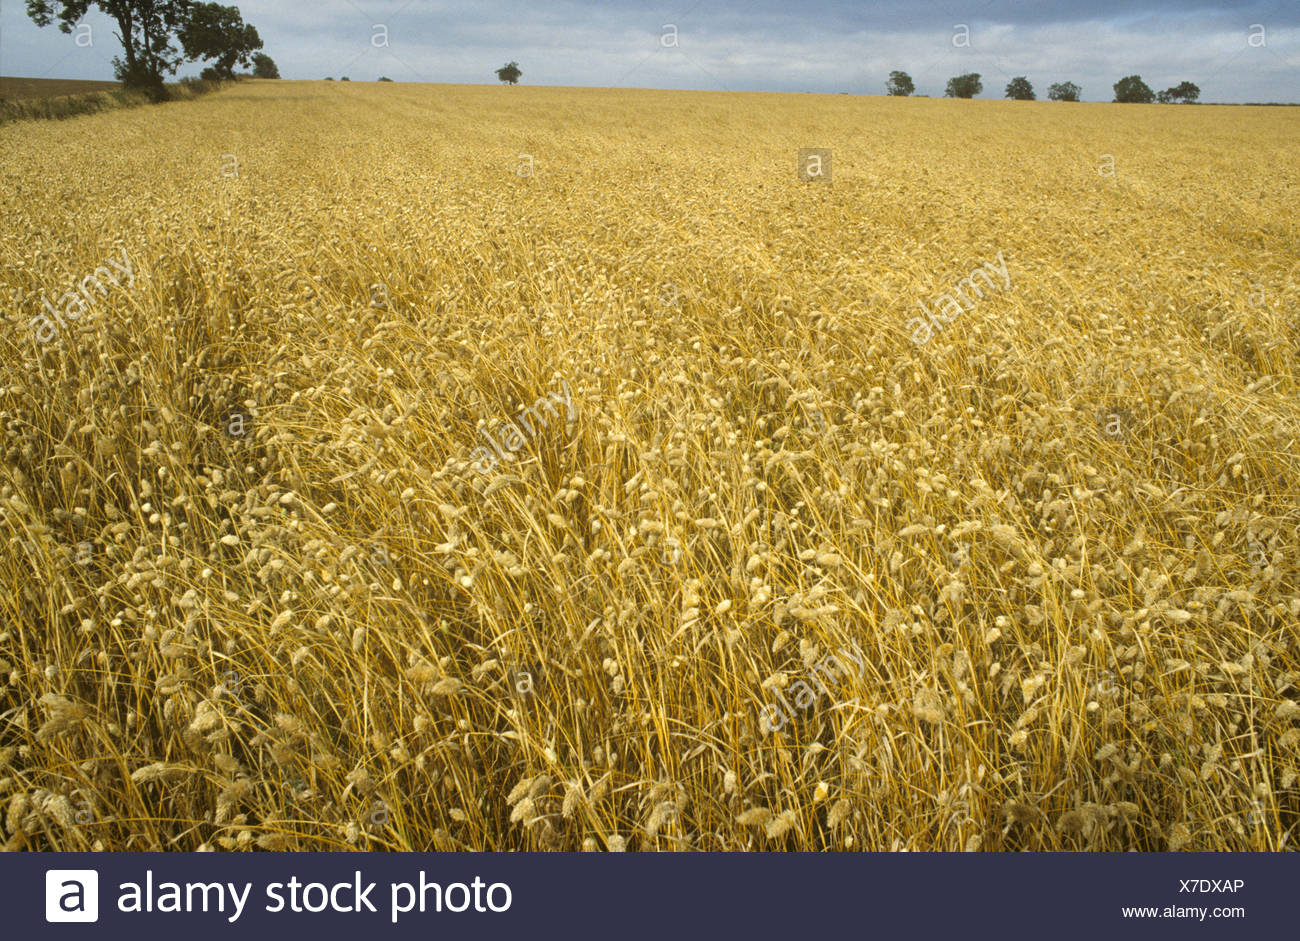 Canary Grass Phalaris canariensis in ripe seedhead grown as crop - Stock Image